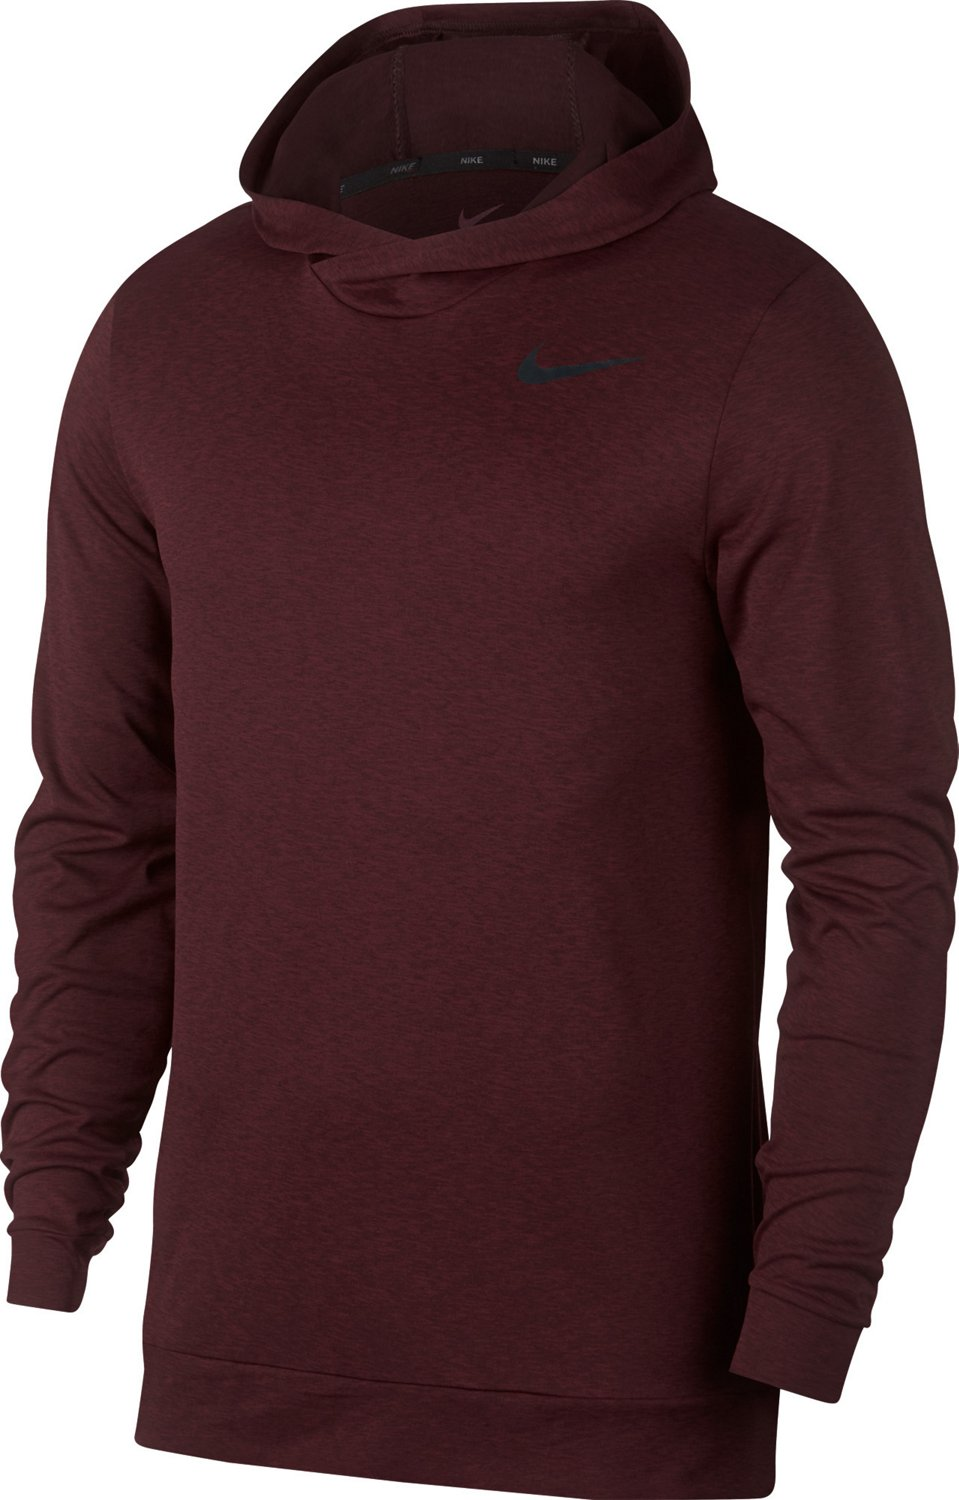 21d2bedcca3 Display product reviews for Nike Men s Breathe Training Hoodie